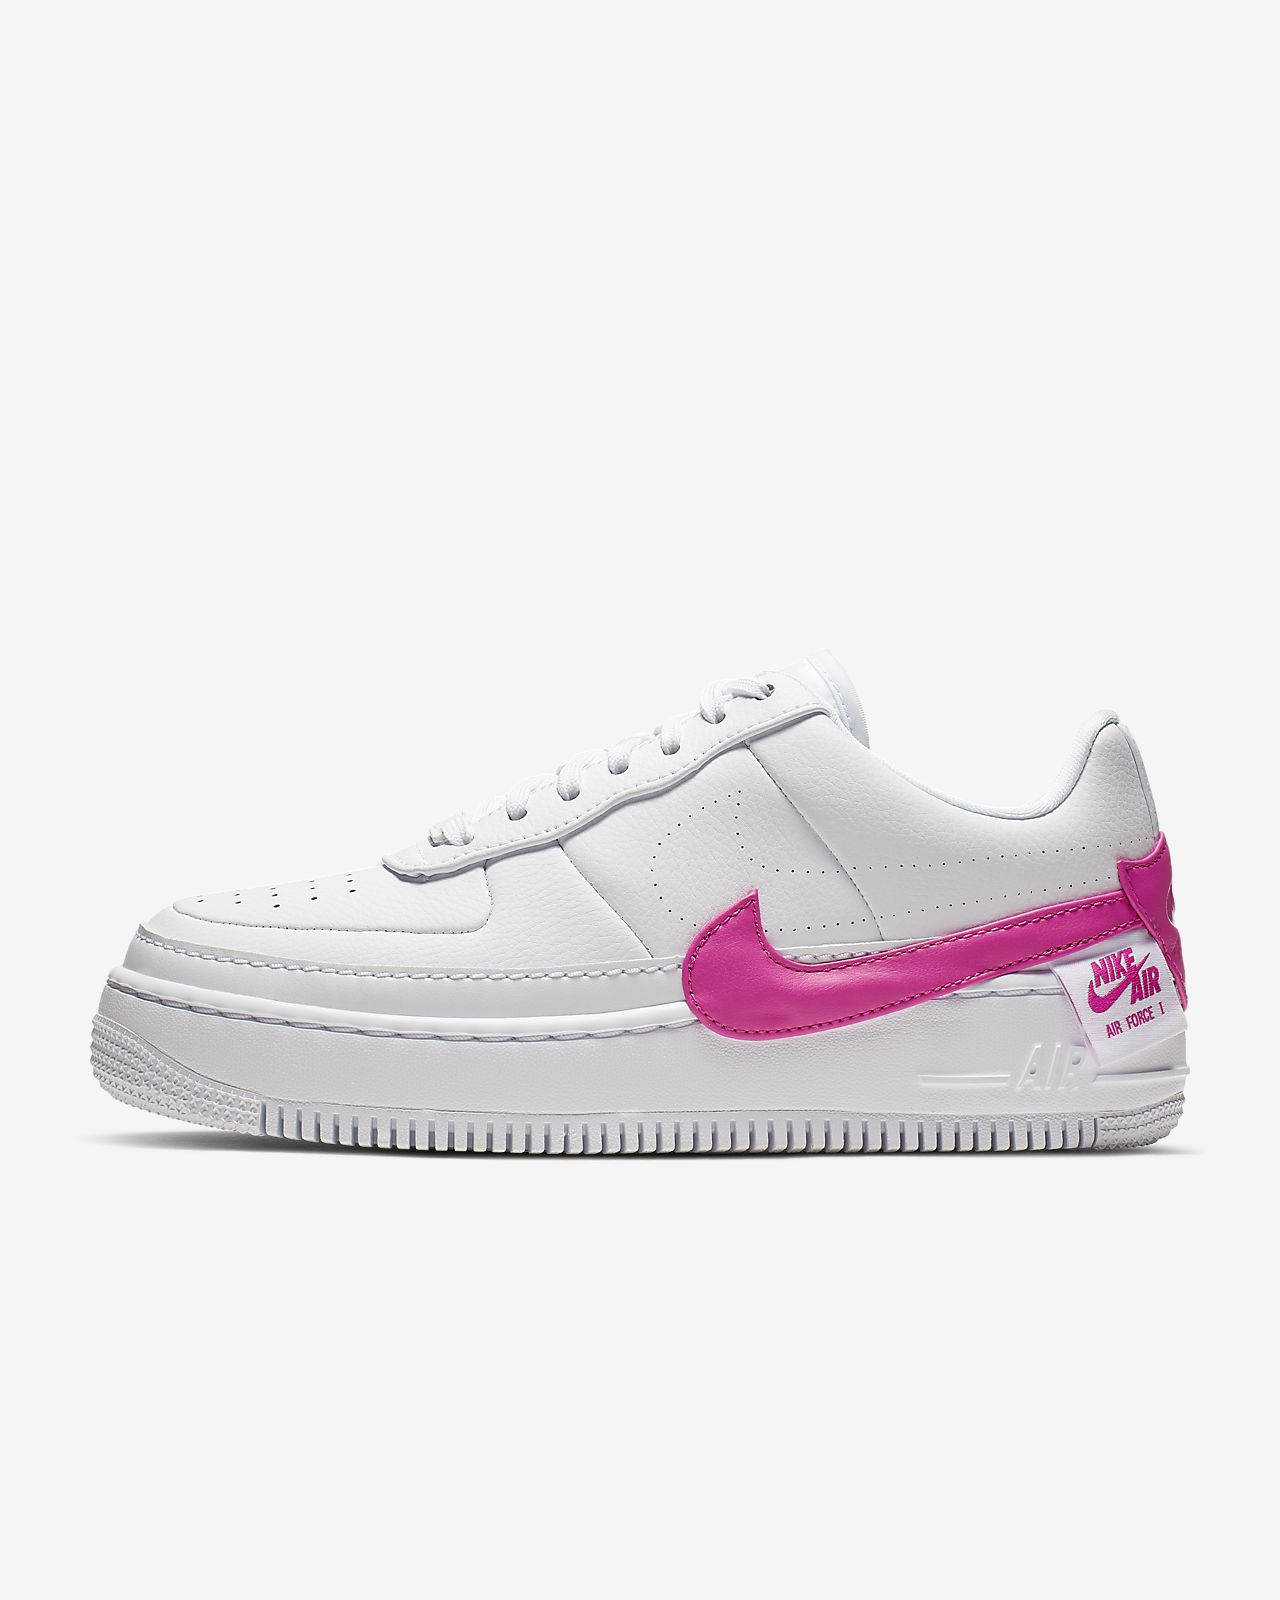 32ba1a1c34 Nike Air Force 1 Jester XX Shoe. Nike.com